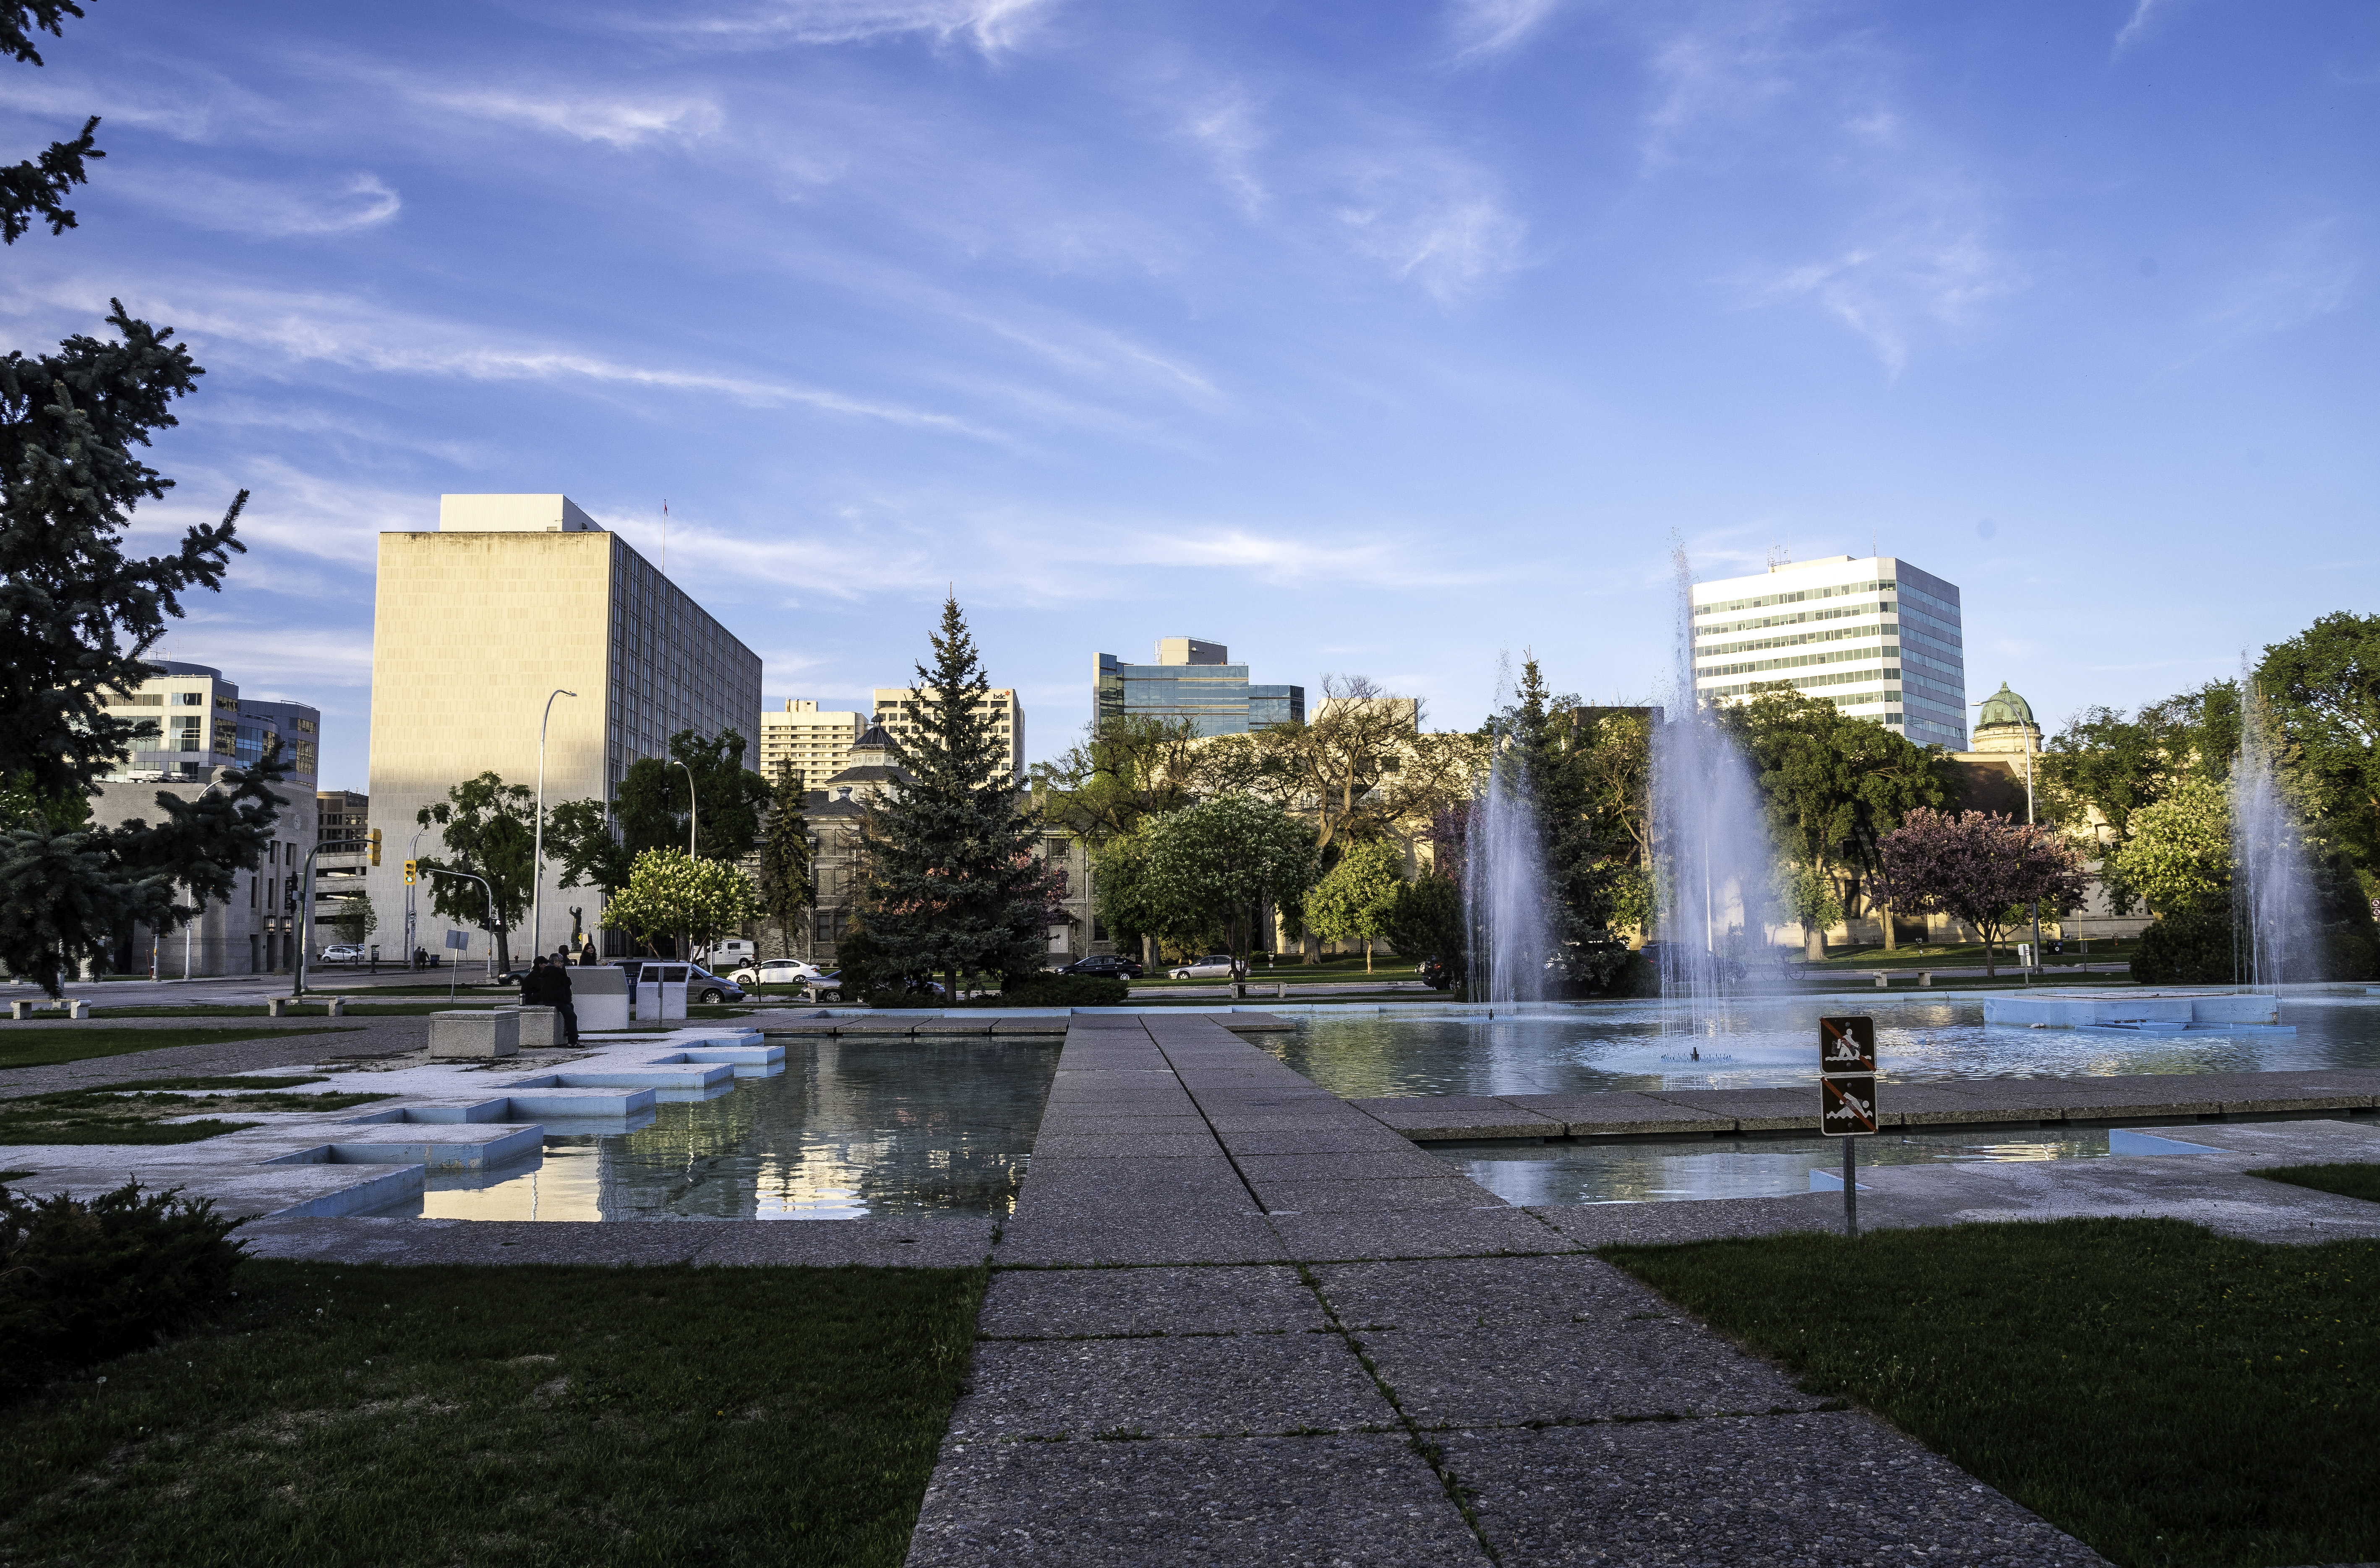 Pools And Fountains With Skyline Of Winnipeg Image Free Stock Photo Public Domain Photo